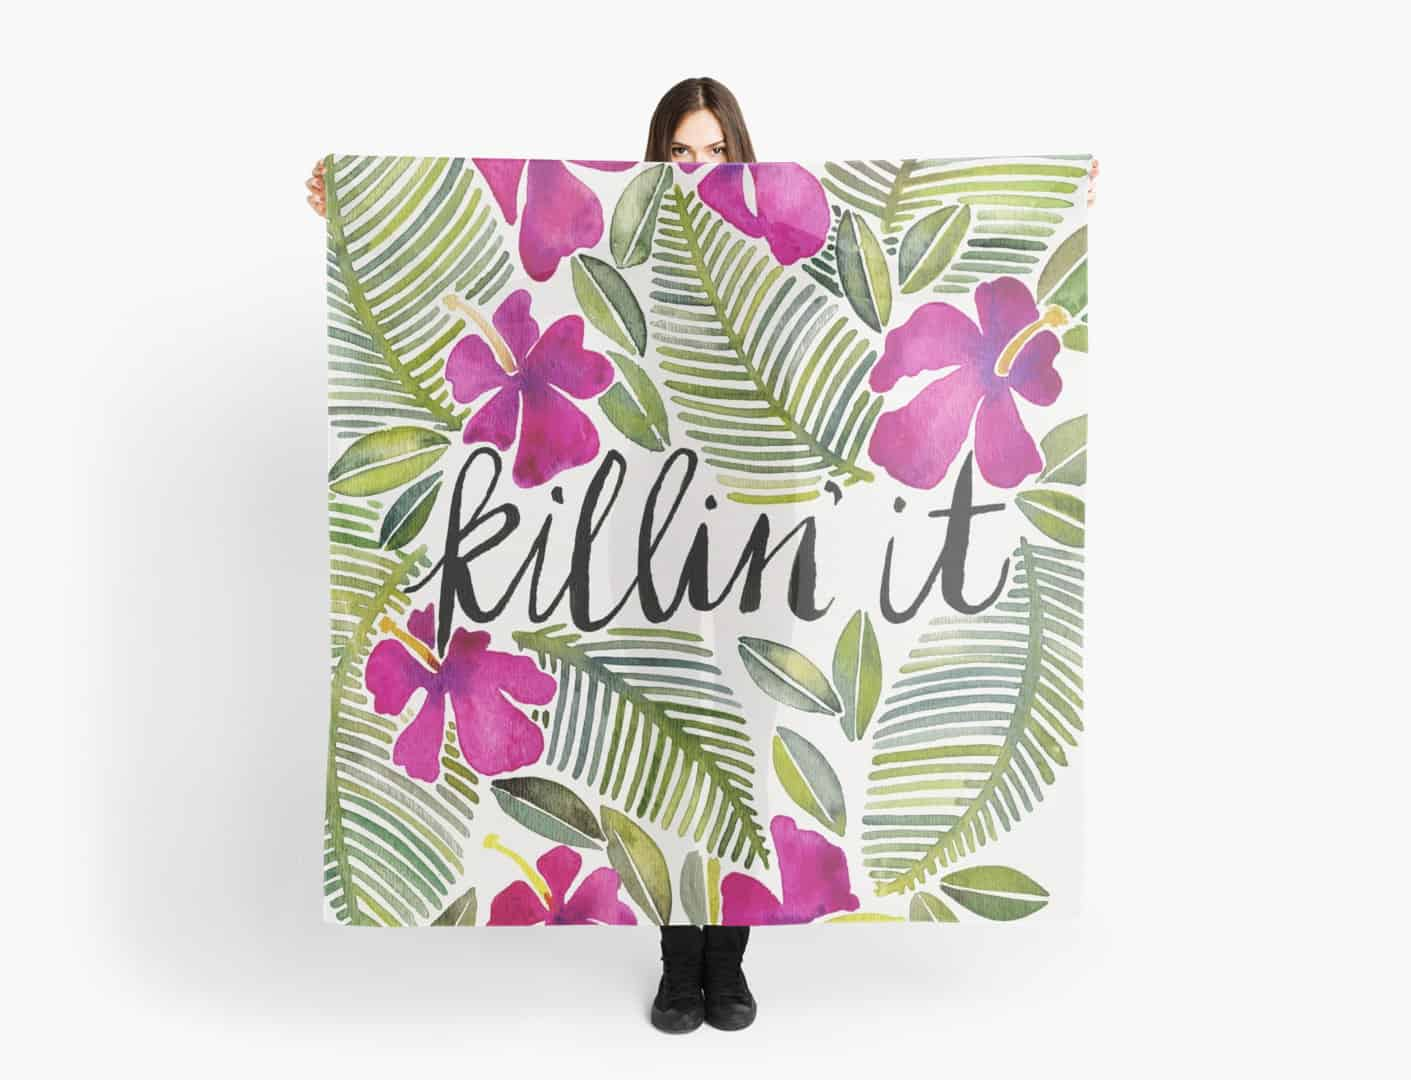 holiday-gifts-redbubble-26